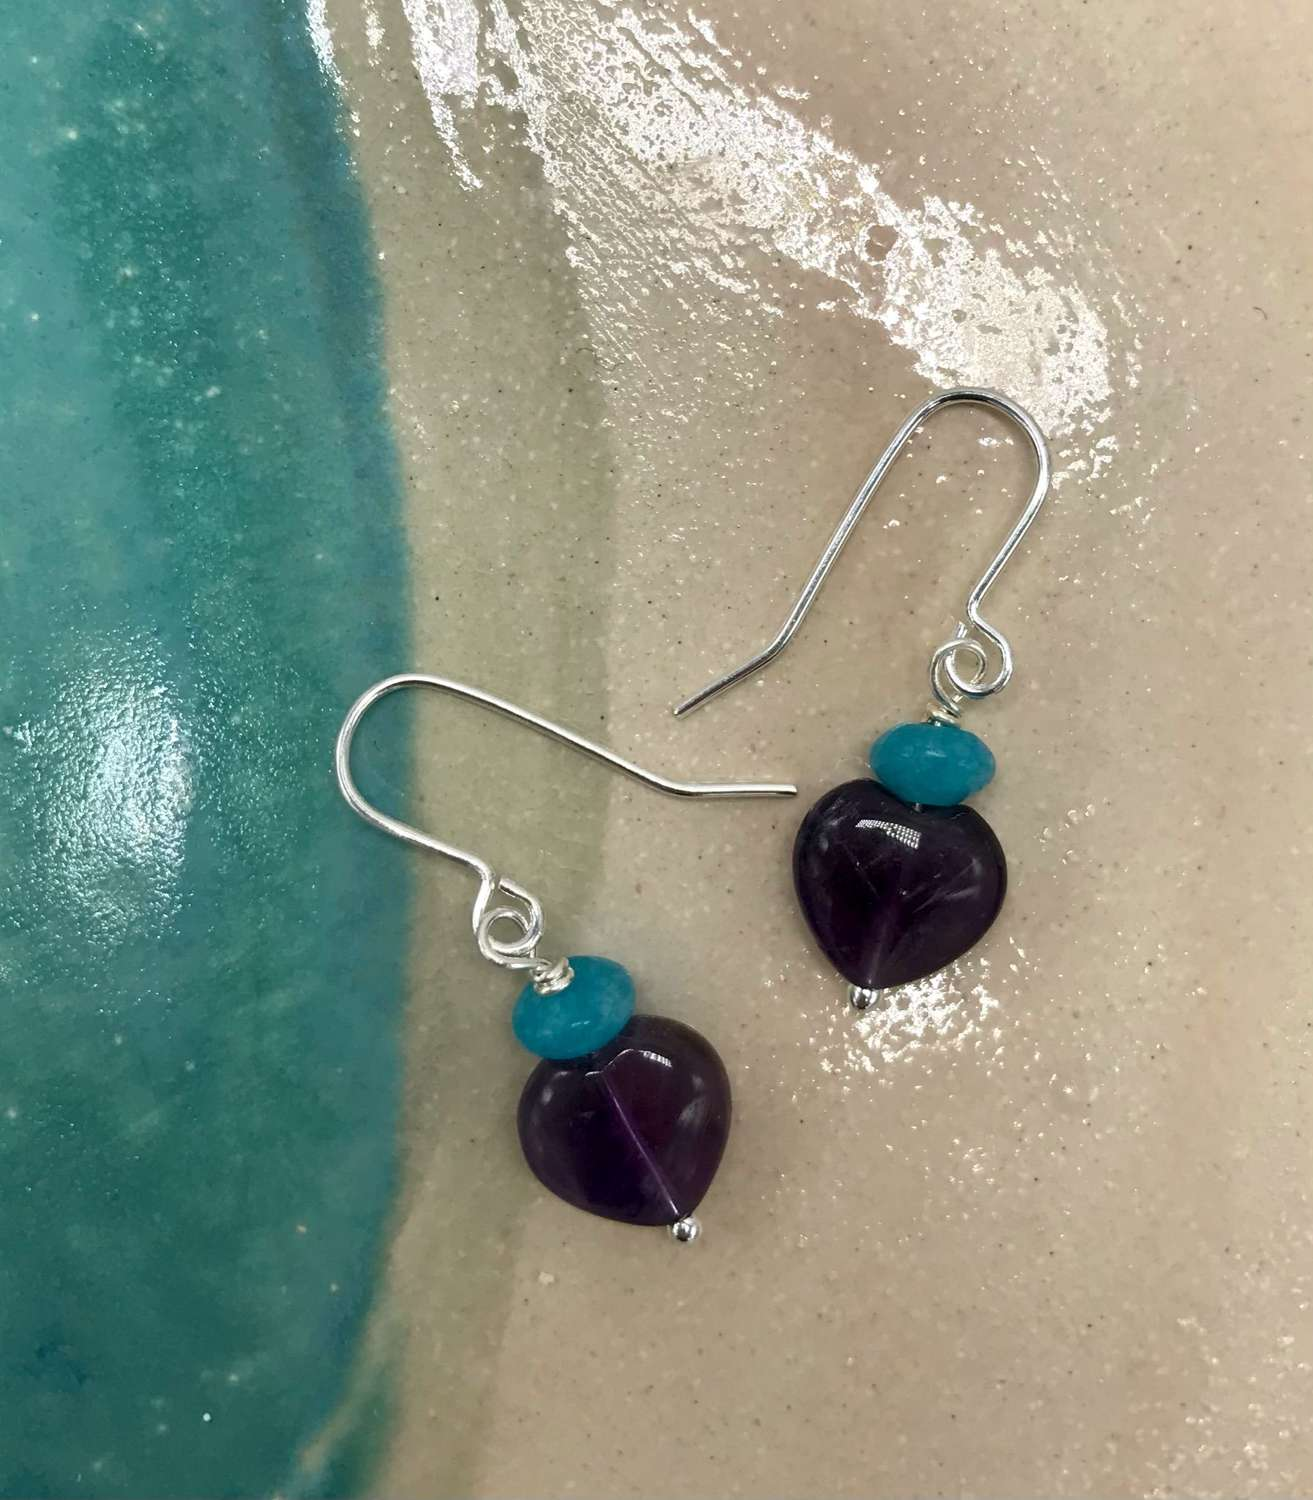 Sally earrings - amethyst/teal